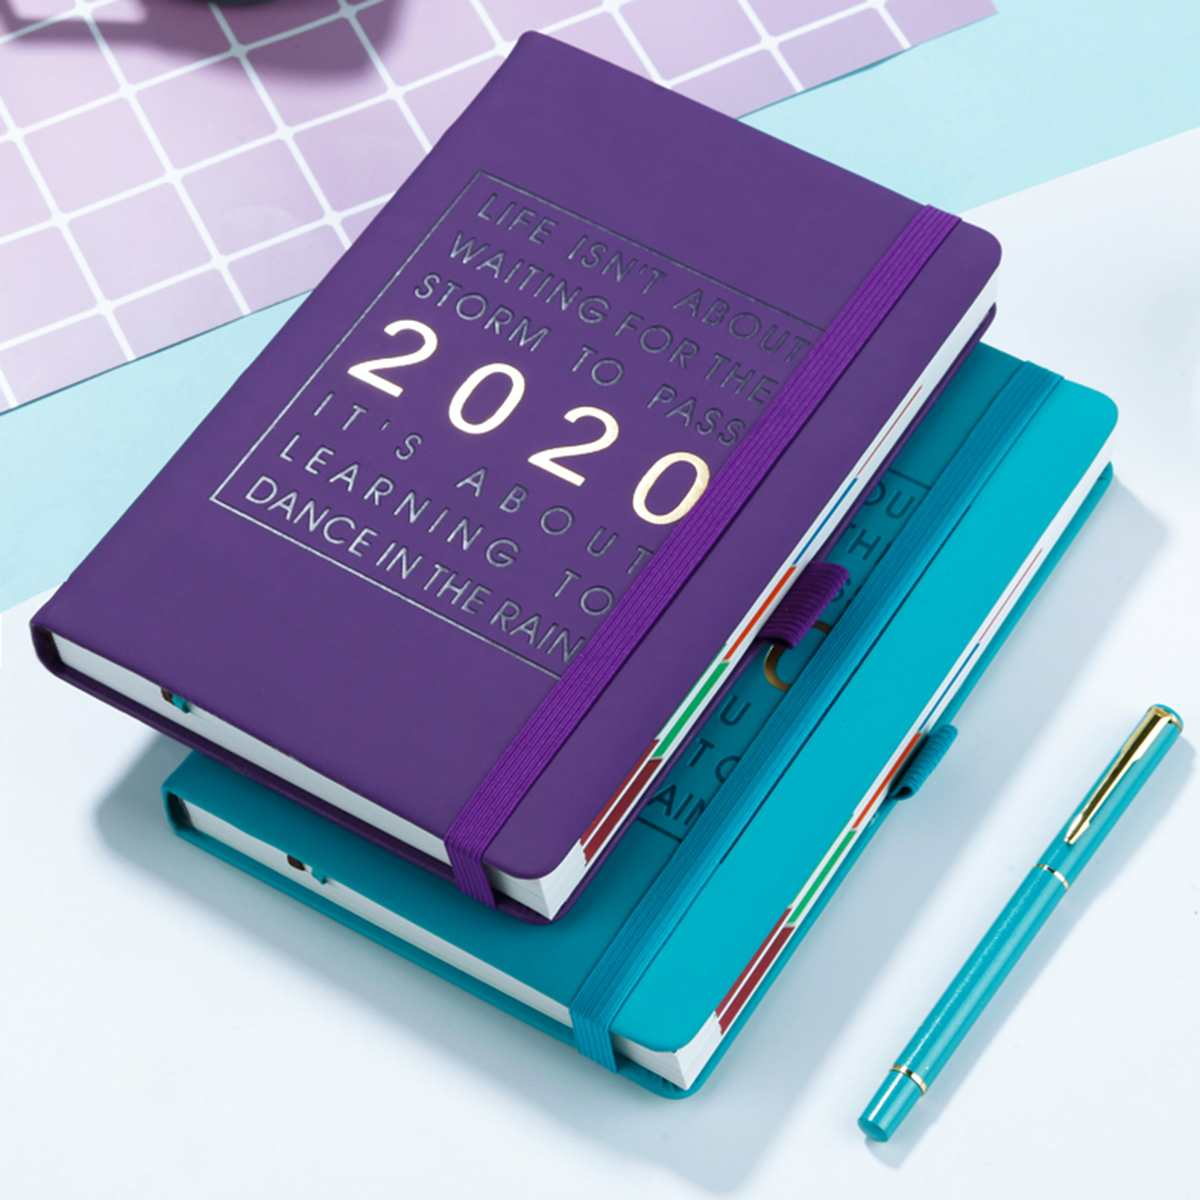 8 Colors Fashion Agenda 2020 Thicken Notebook A5 PU Leather Planner 2020 Jan-Dec Timeline Efficiency Journal English Language